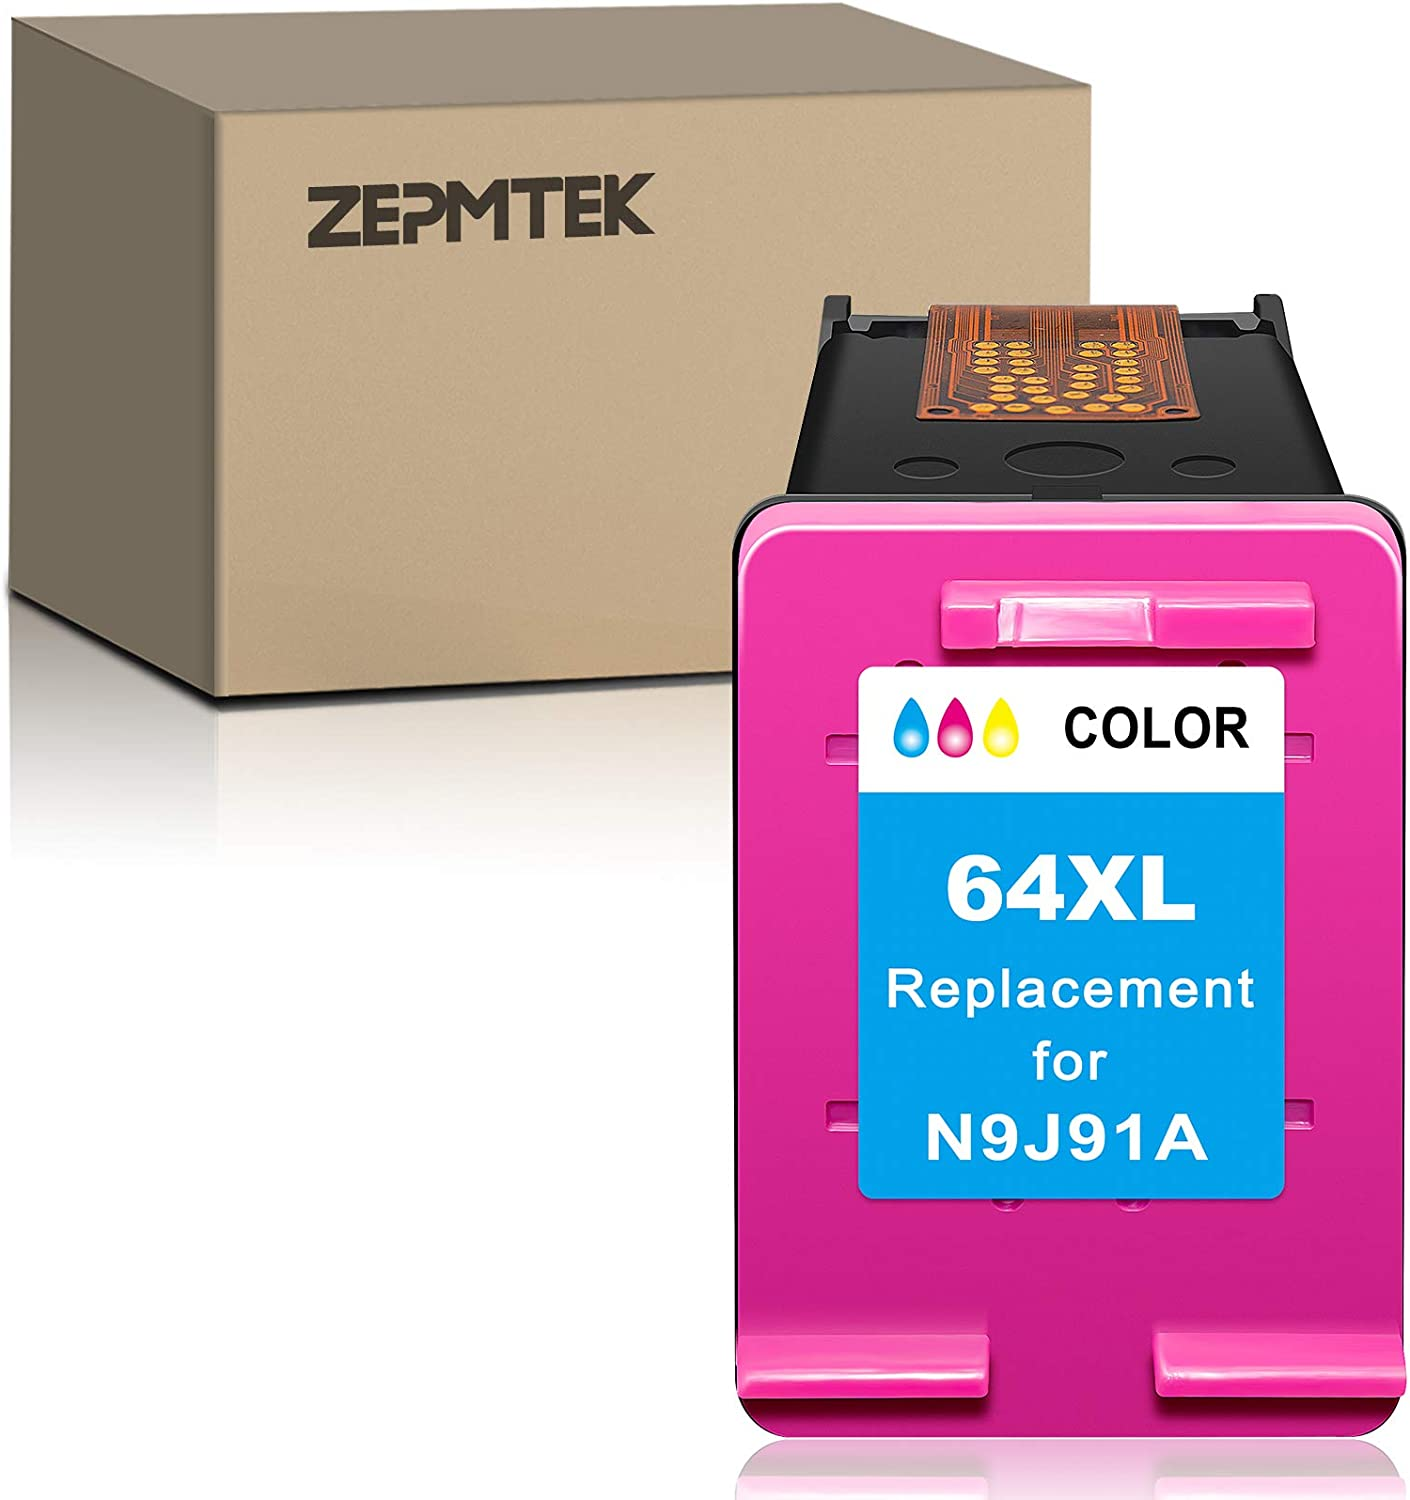 ZepmTek Remanufactured Ink Cartridge Replacement for HP 64XL 64 XL Used with Envy Photo 7800 7858 7155 7855 6255 6252 7158 7130 7164 6222 7120 7130 Tango X Smart Home Wireless Printer (1 Tri-Color)